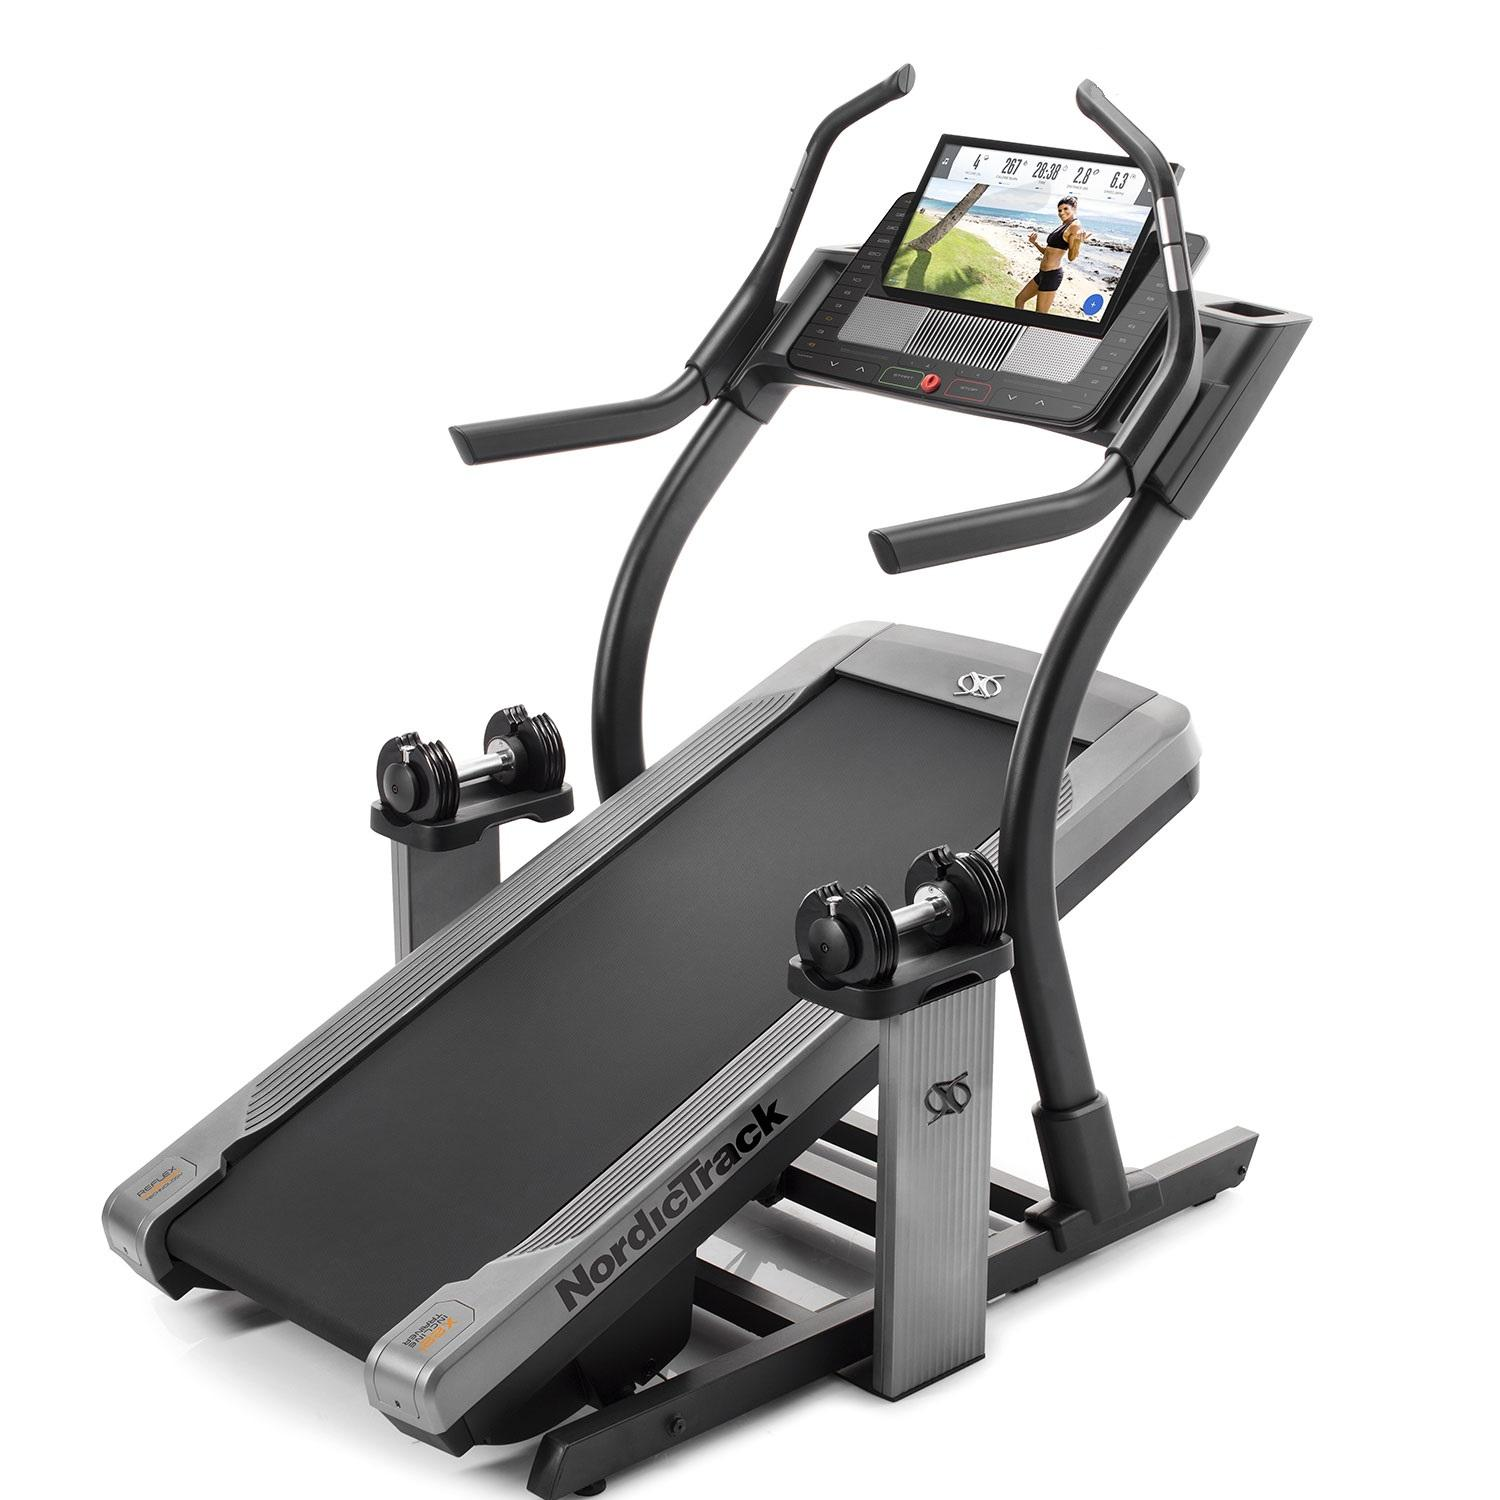 Беговая дорожка NordicTrack Incline Trainer X22i, фото №1